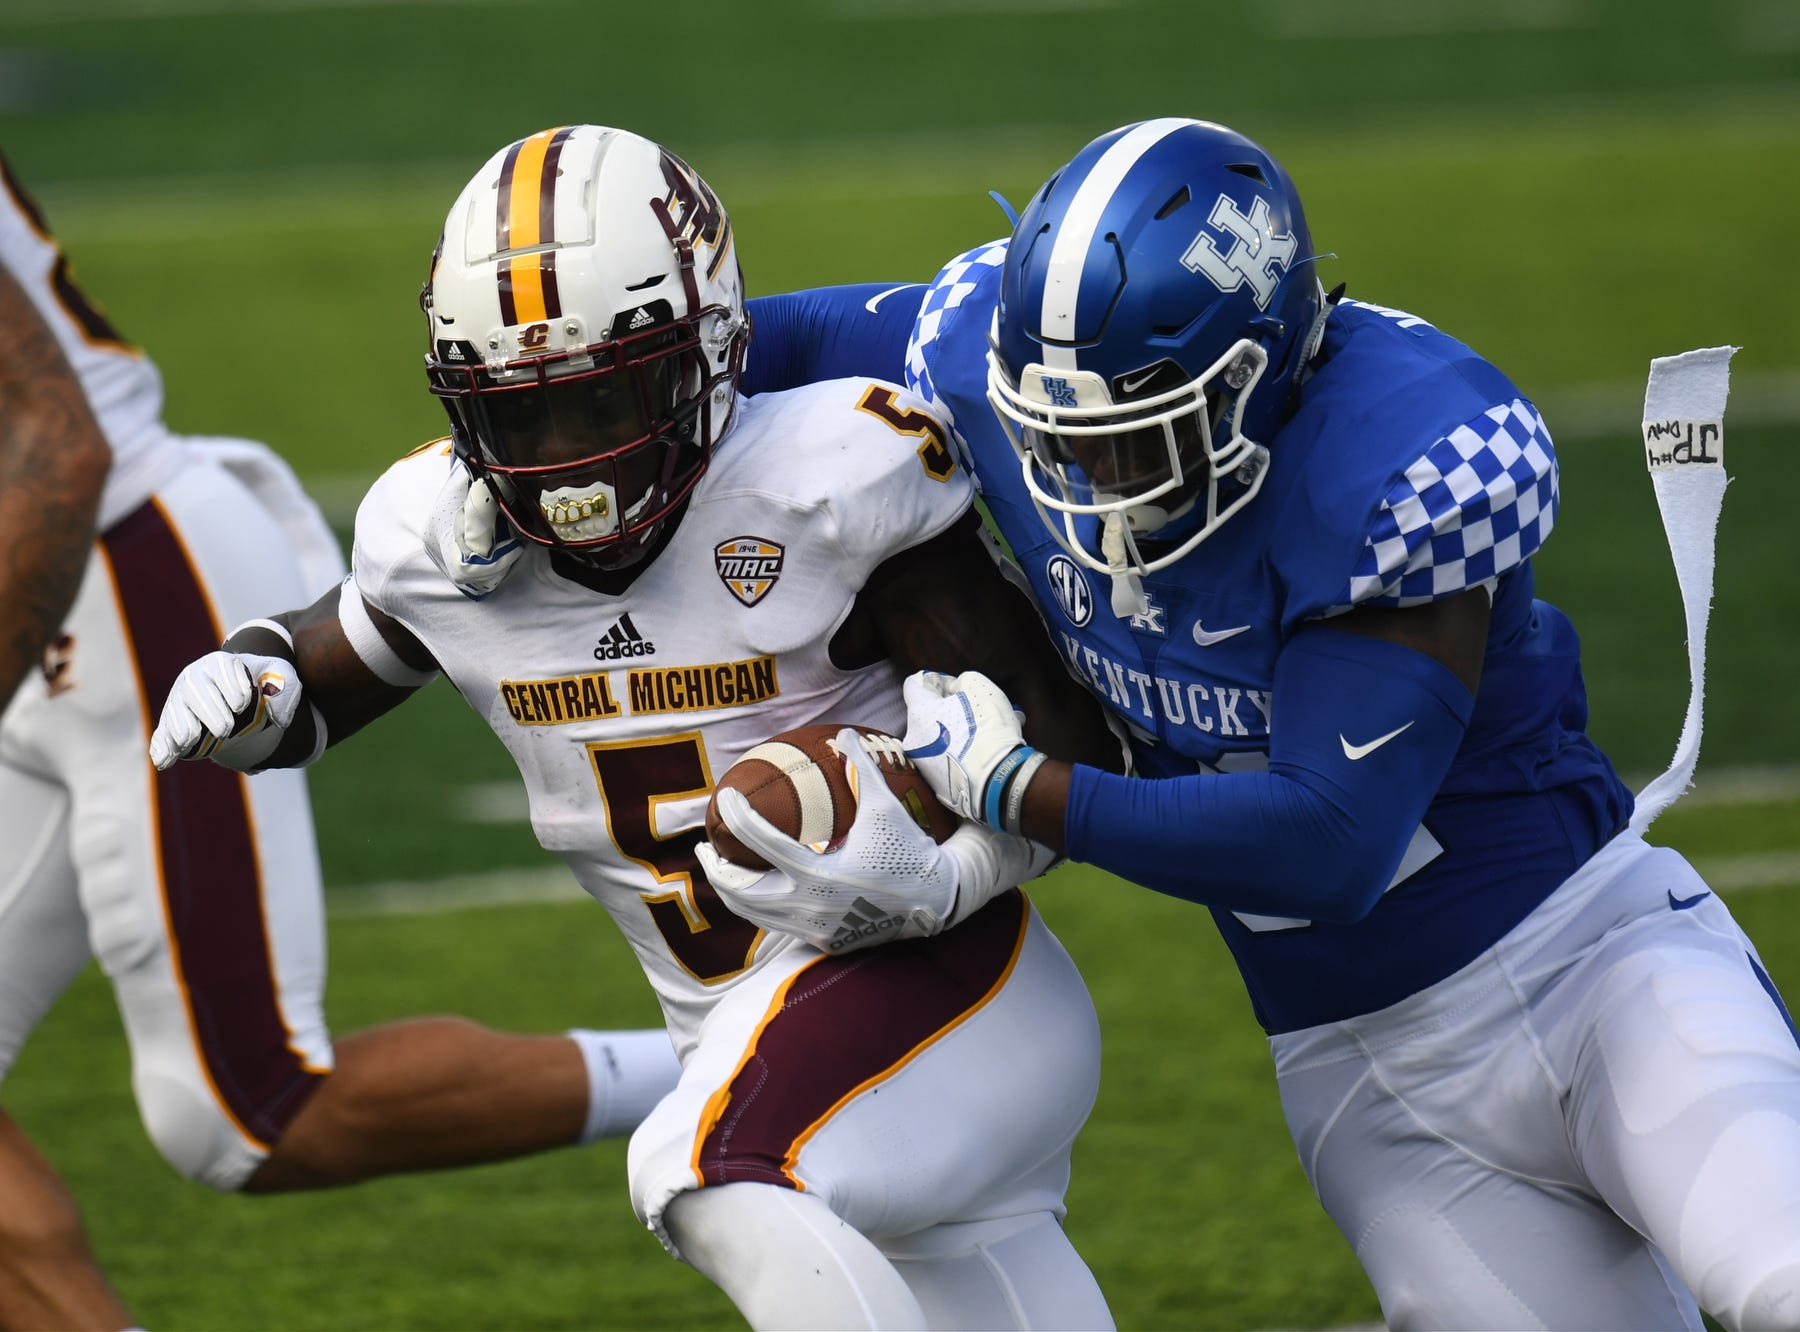 UK OLB Jamar Watson makes the tackle during the University of Kentucky football game against Central Michigan at Kroger Field in Lexington, Kentucky on Saturday, September 1, 2018.